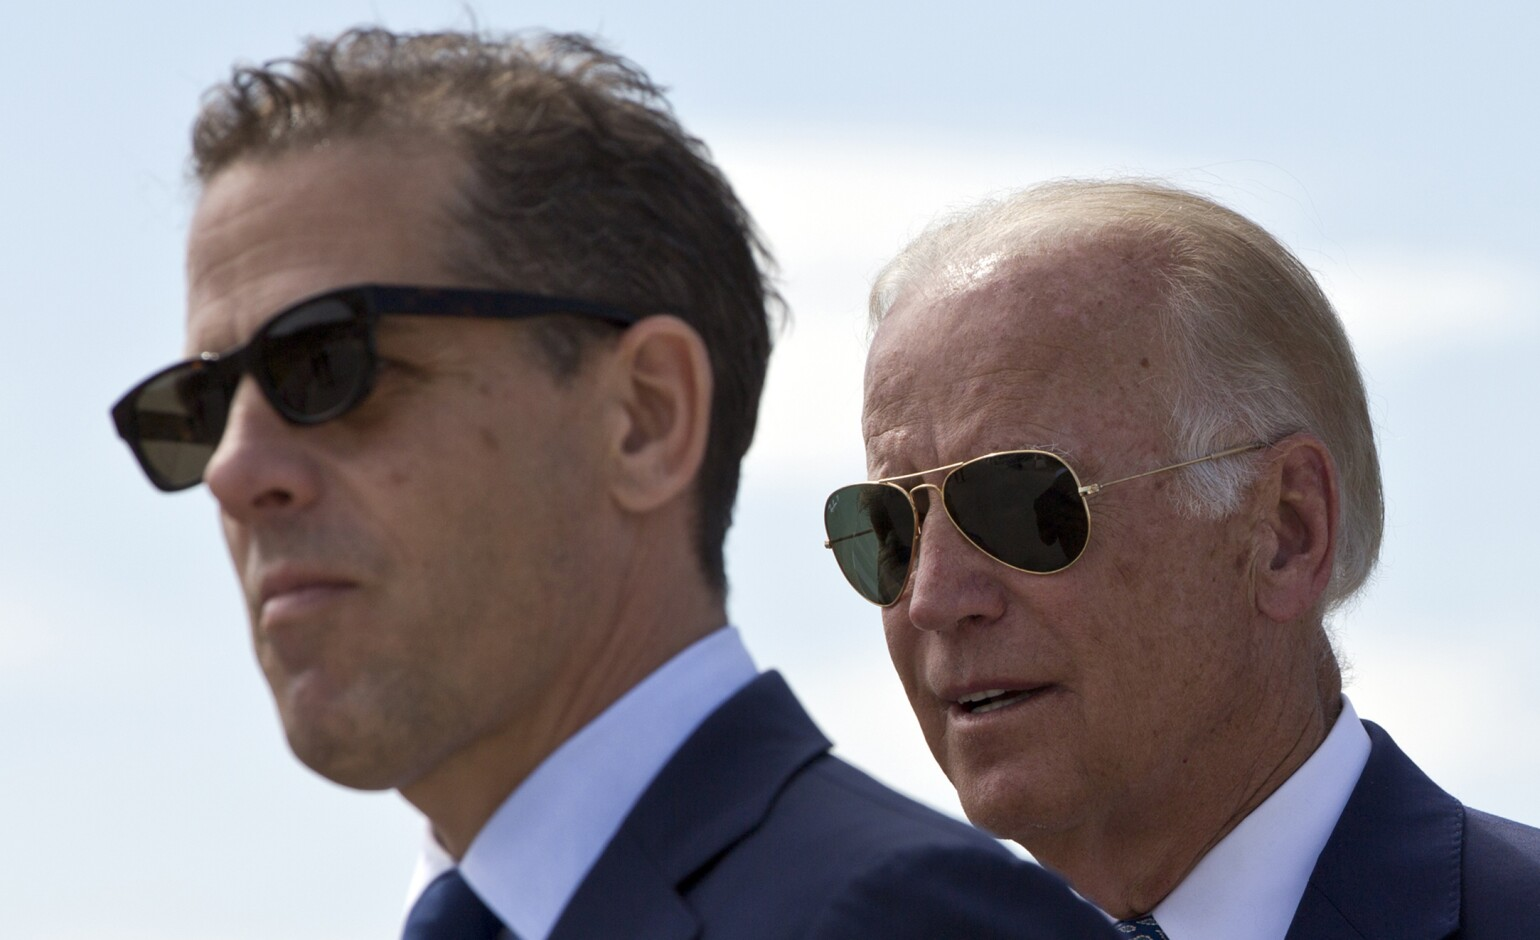 Hunter Biden, Joe Biden